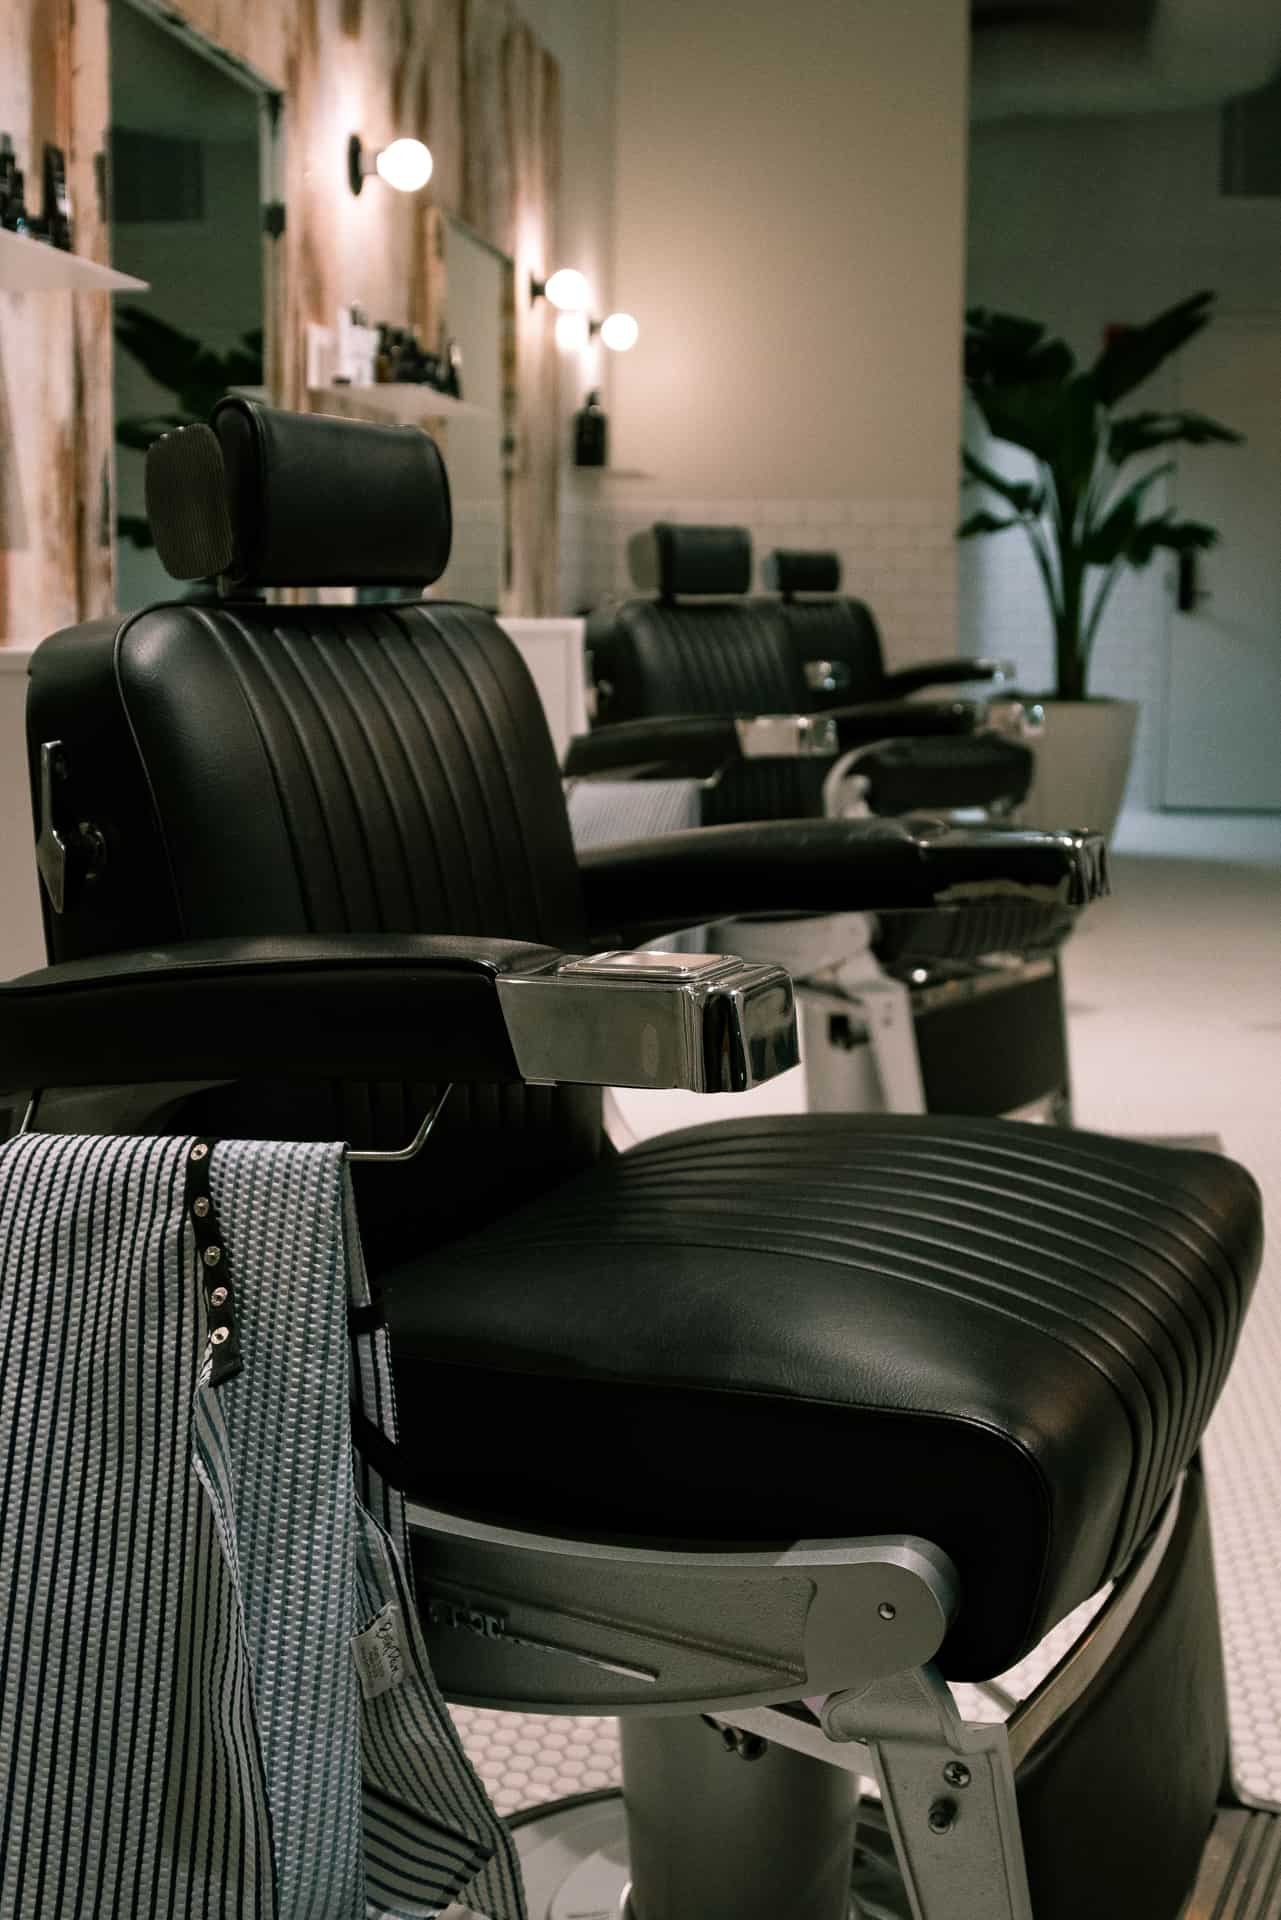 Service Retail Business Photograph of the Barbershop at Blind Barber in Philadelphia, PA